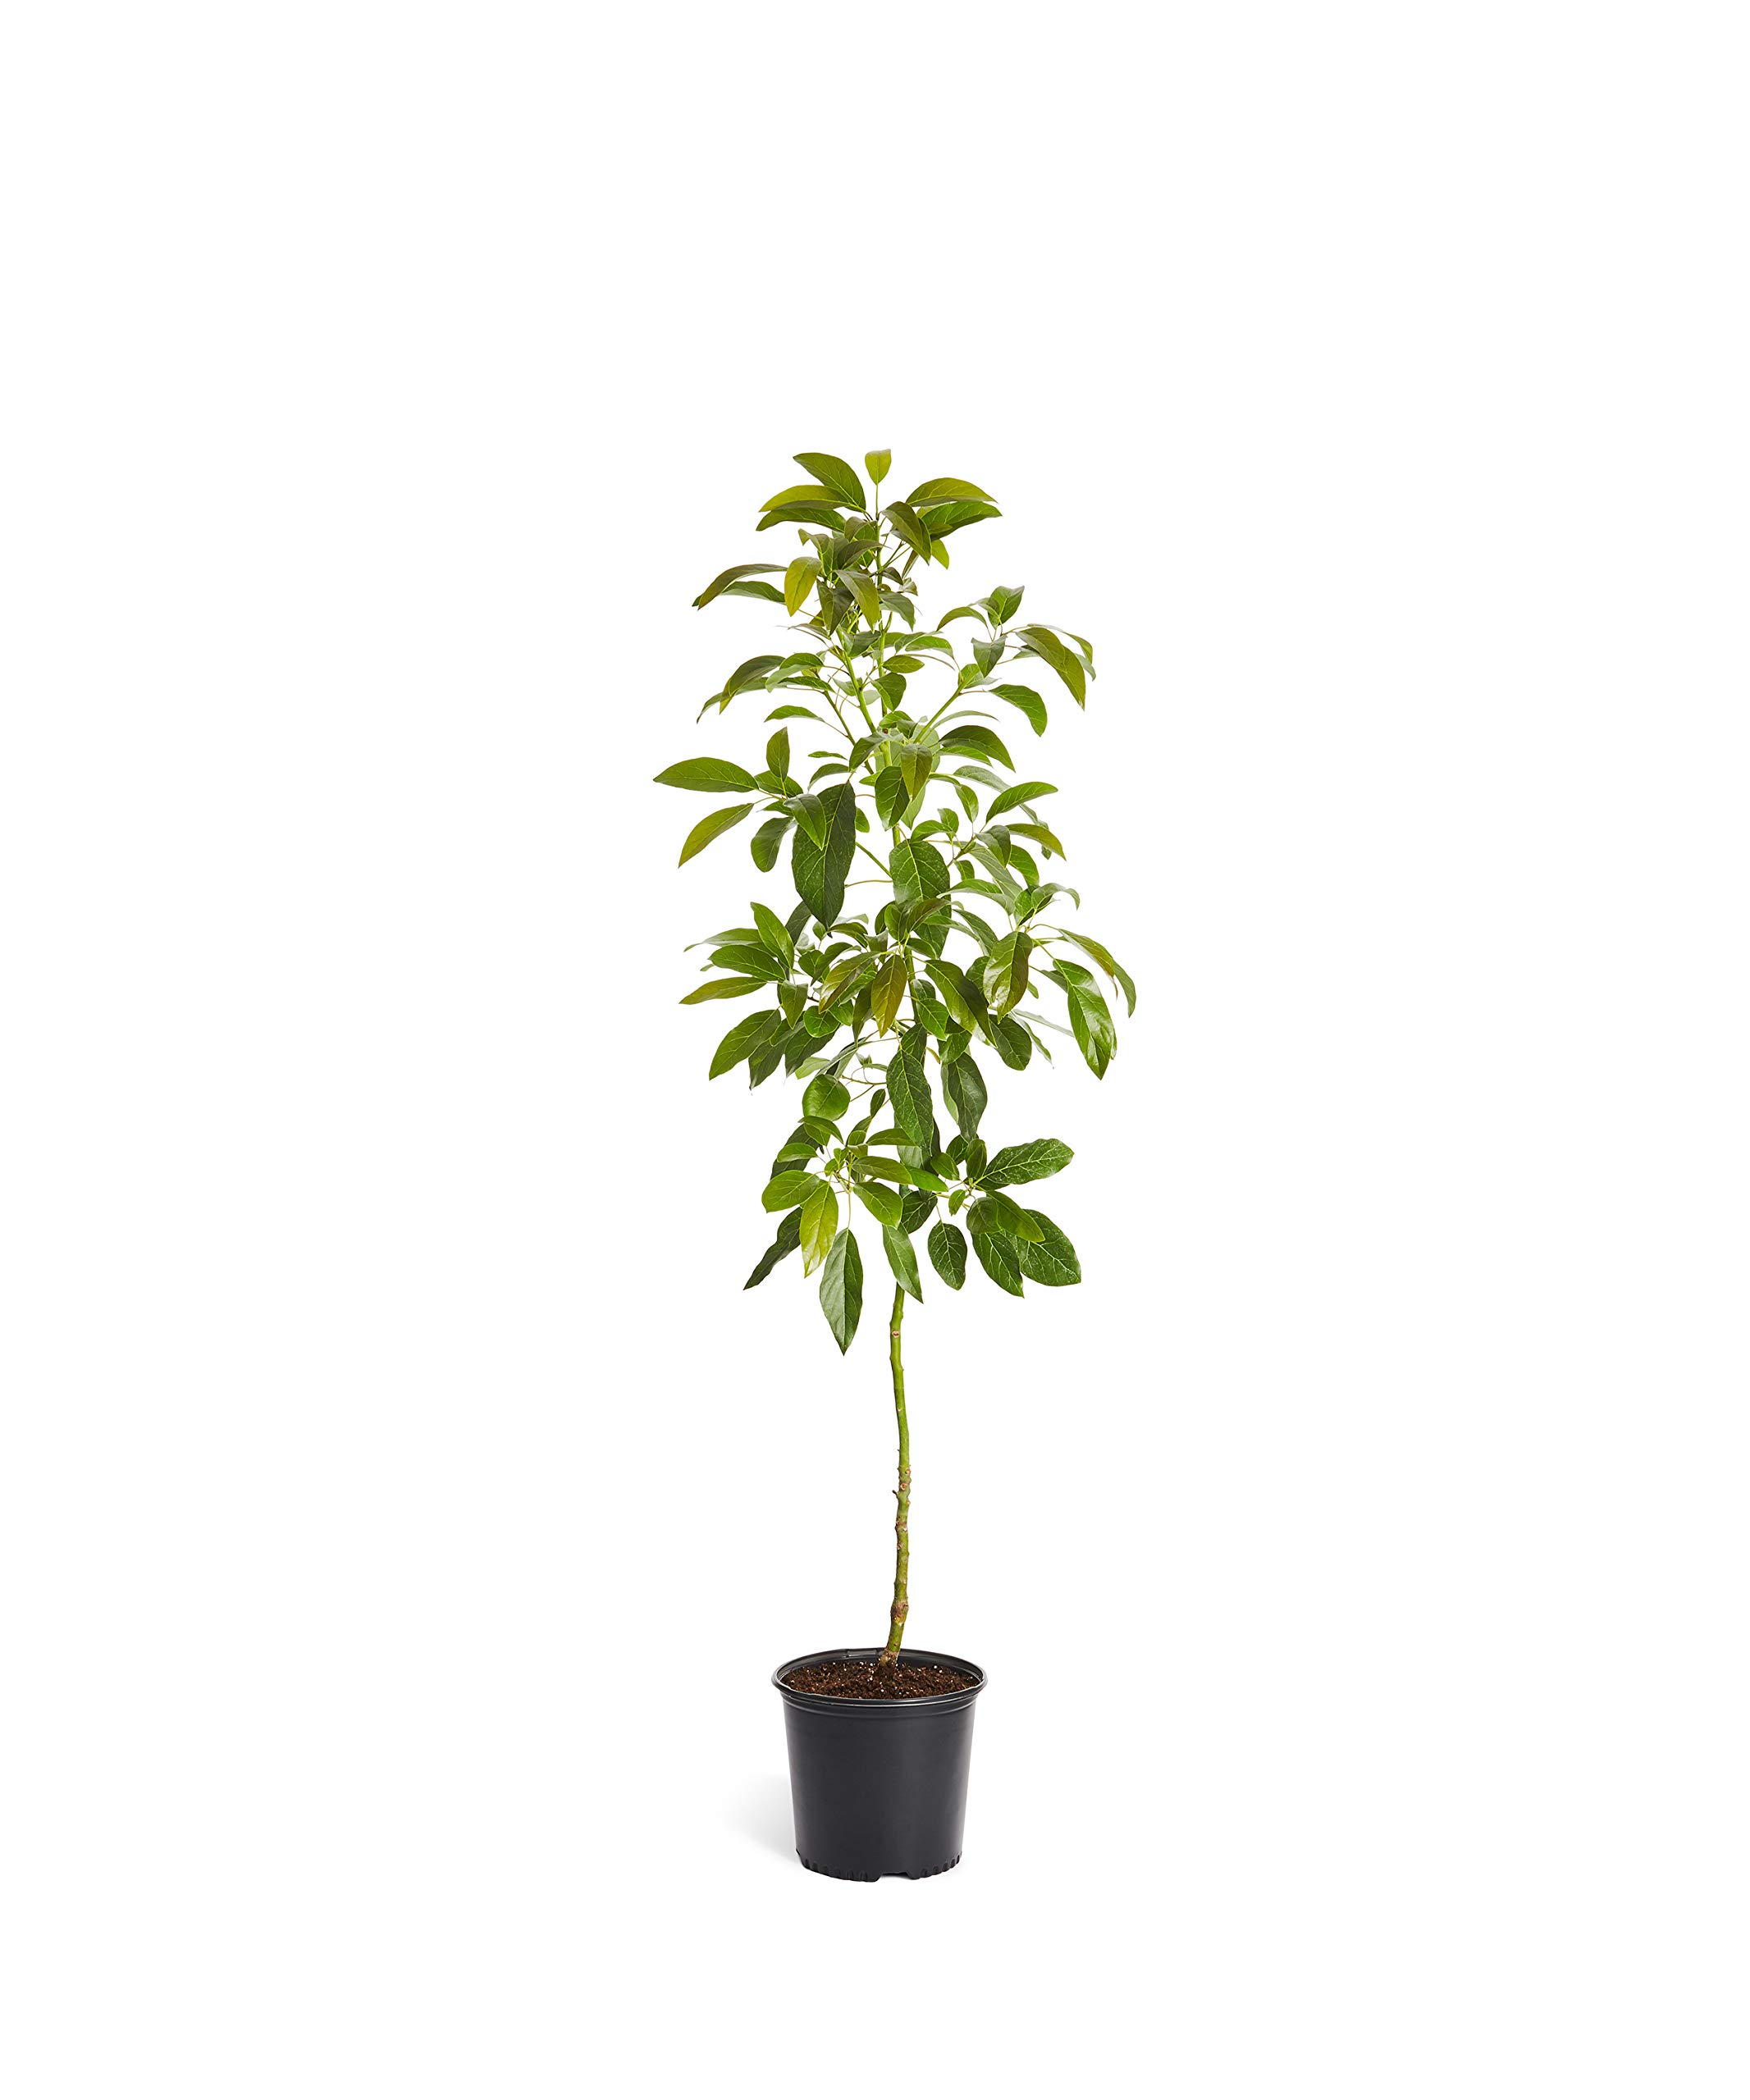 HASS Avocado Tree - Large Indoor/Outdoor Avocado Trees, Ready to give Fruit - Get Delicious Avocado Fruit Year Round from This Patio Fruit Tree - 3-4 ft. - Cannot Ship to AZ by Brighter Blooms (Image #1)